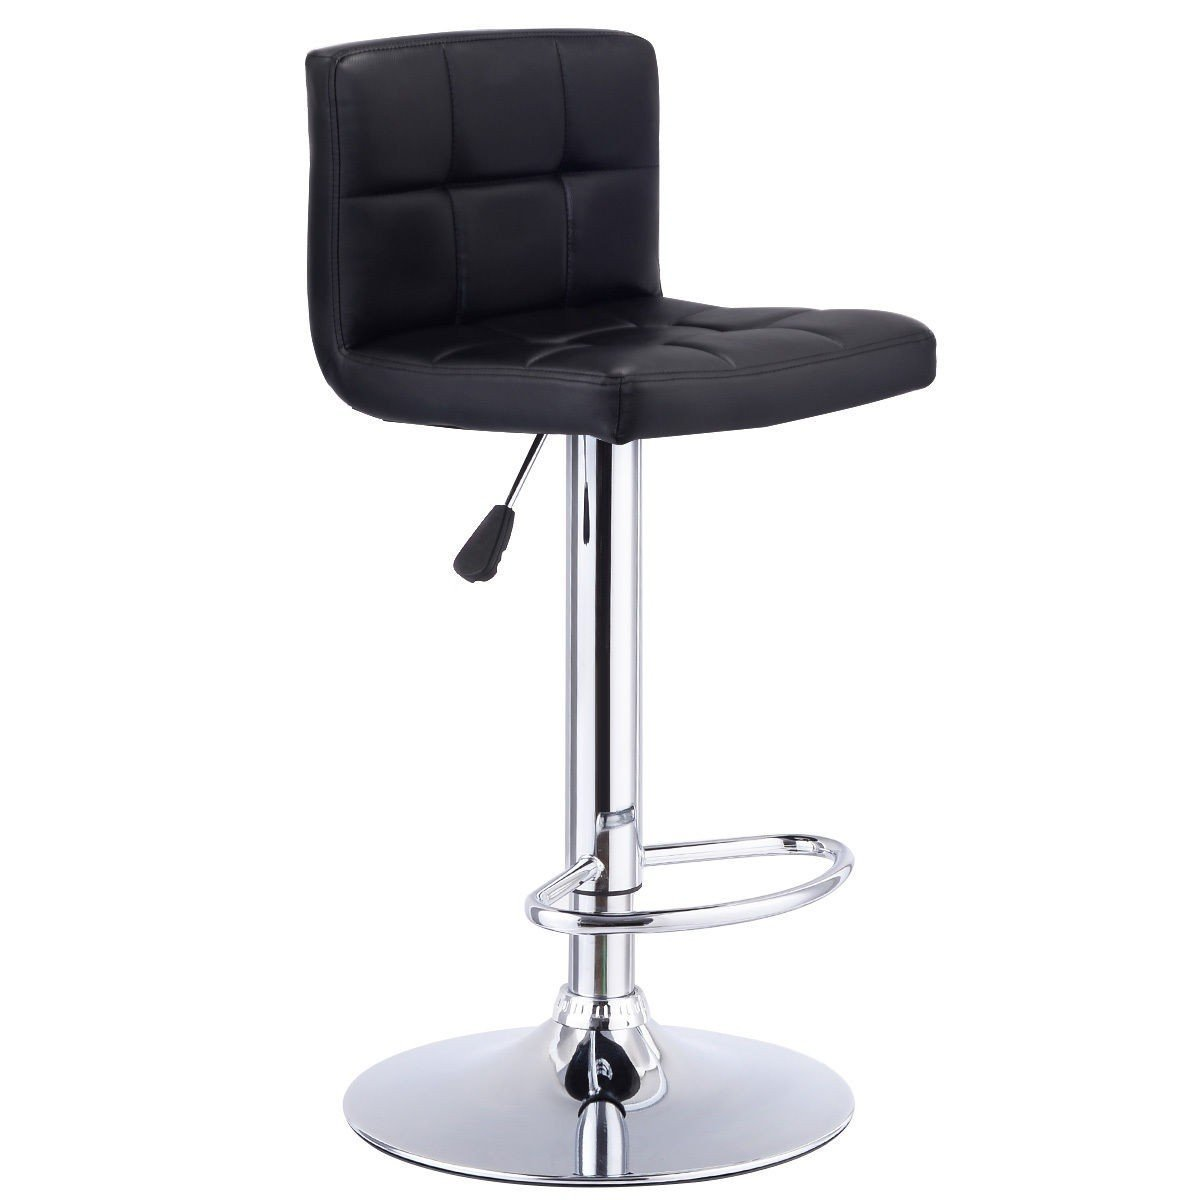 GentleShower Swivel Bar Chair, Modern Square Shape Barstool Bistro Chair PU Leather Adjustable Hydraulic Swivel Pub Chair Counter Backrest, Black by GentleShower